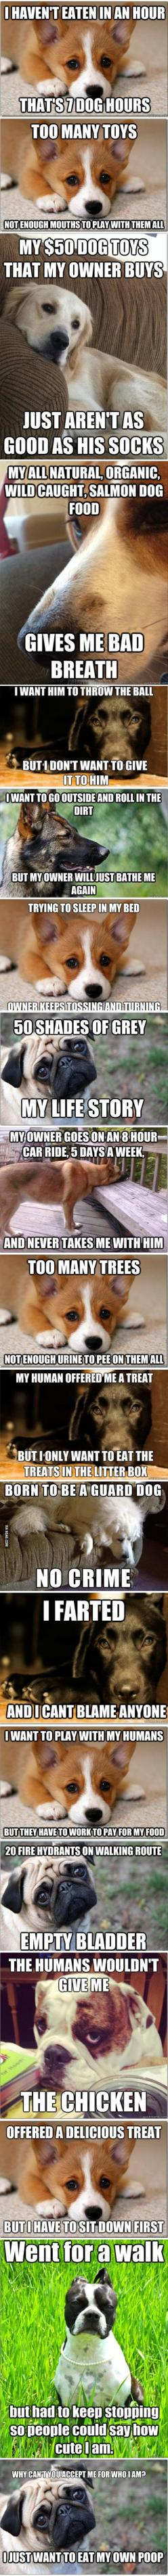 Applies pretty much perfectly to our doggies :): Puppy Memes, Dog Problems, Doggie Problems, Hard Life, Puppy Problems, Animal